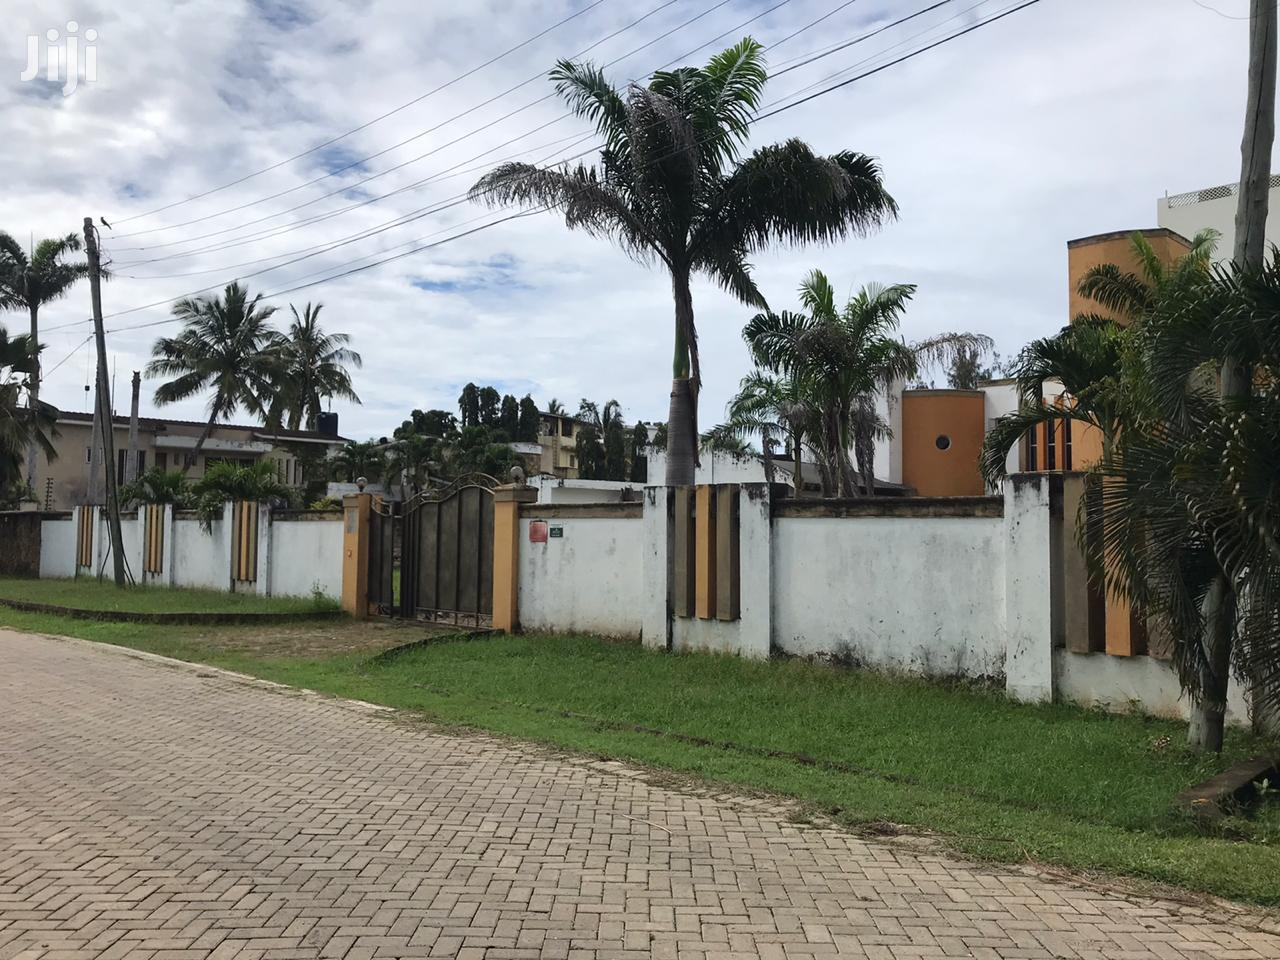 Nyali Barracks//4 Bedroom House on 1/2 Acre Own Compound | Houses & Apartments For Sale for sale in Nyali, Mombasa, Kenya